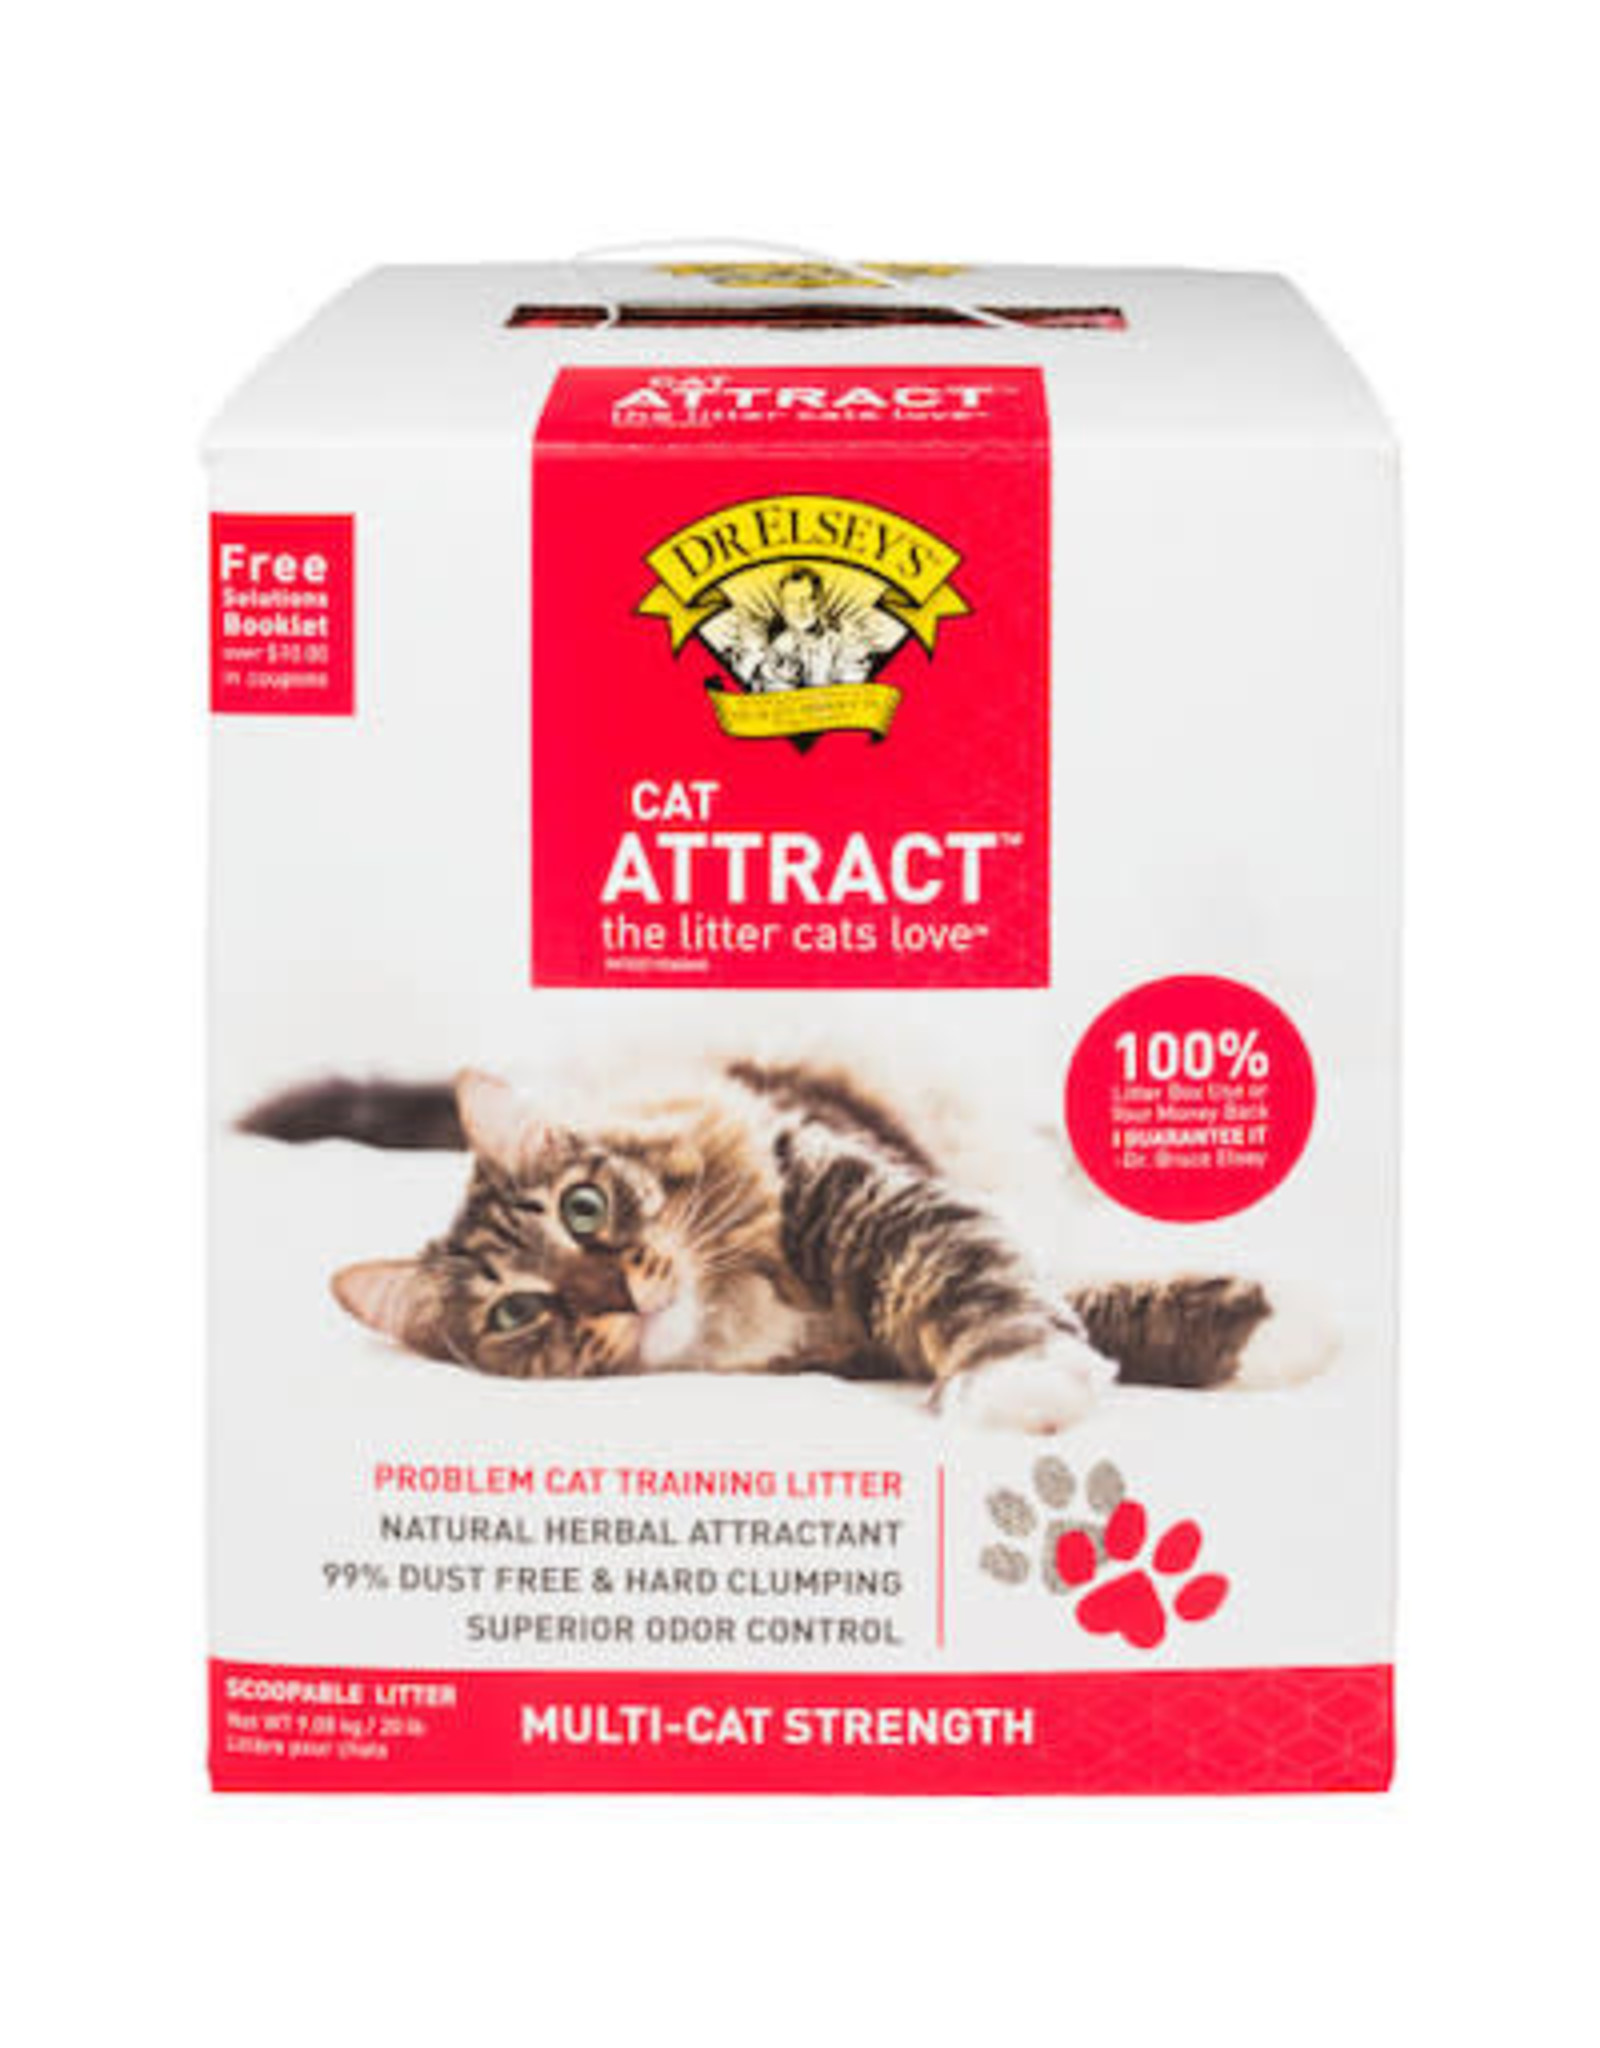 Dr. Elsey's DR. ELSEY'S CAT ATTRACT MULTI-CAT STRENGTH LITTER